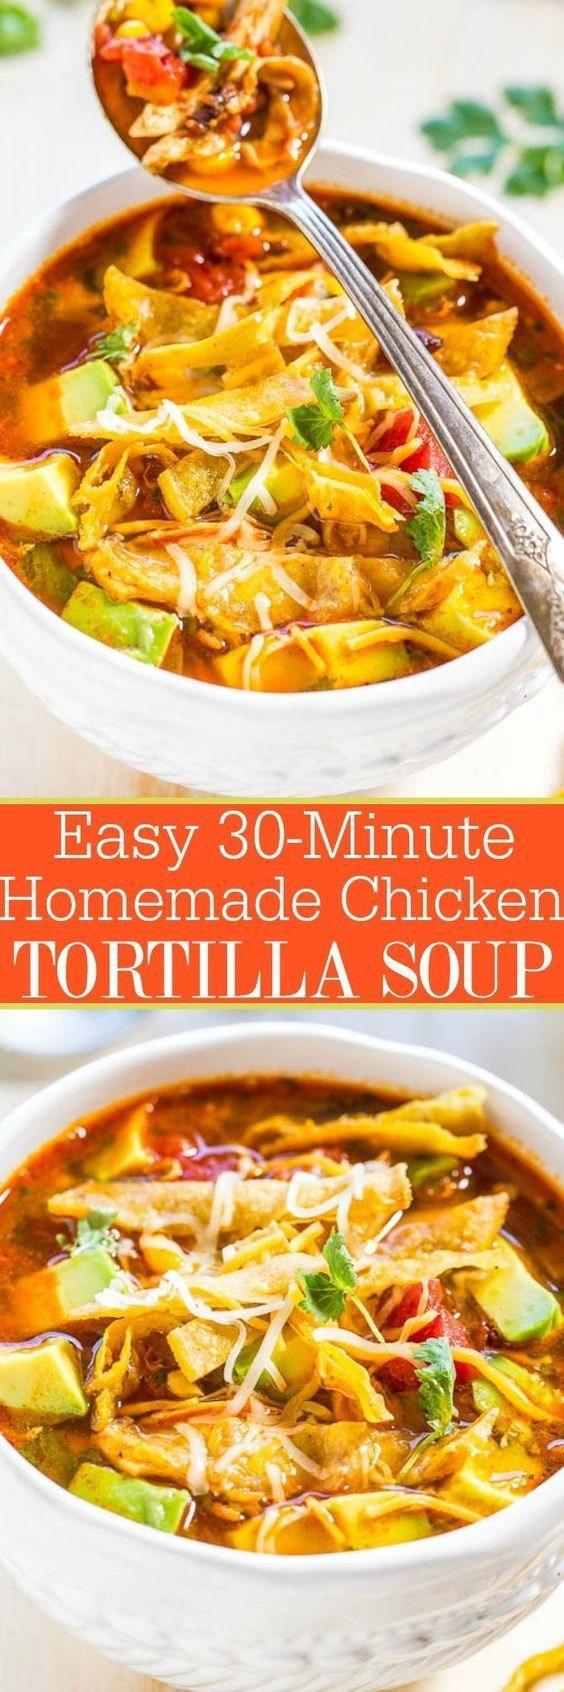 Easy 30-Minute Homemade Chicken Tortilla Soup Recipe via Averie Cooks - Chicken, tomatoes, corn, black beans, avocado, cheese, and addictively crunchy tortilla strips! Fast, easy weeknight meal, and better than from a restaurant!! - The BEST 30 Minute Meals Recipes - Easy, Quick and Delicious Family Friendly Lunch and Dinner Ideas: